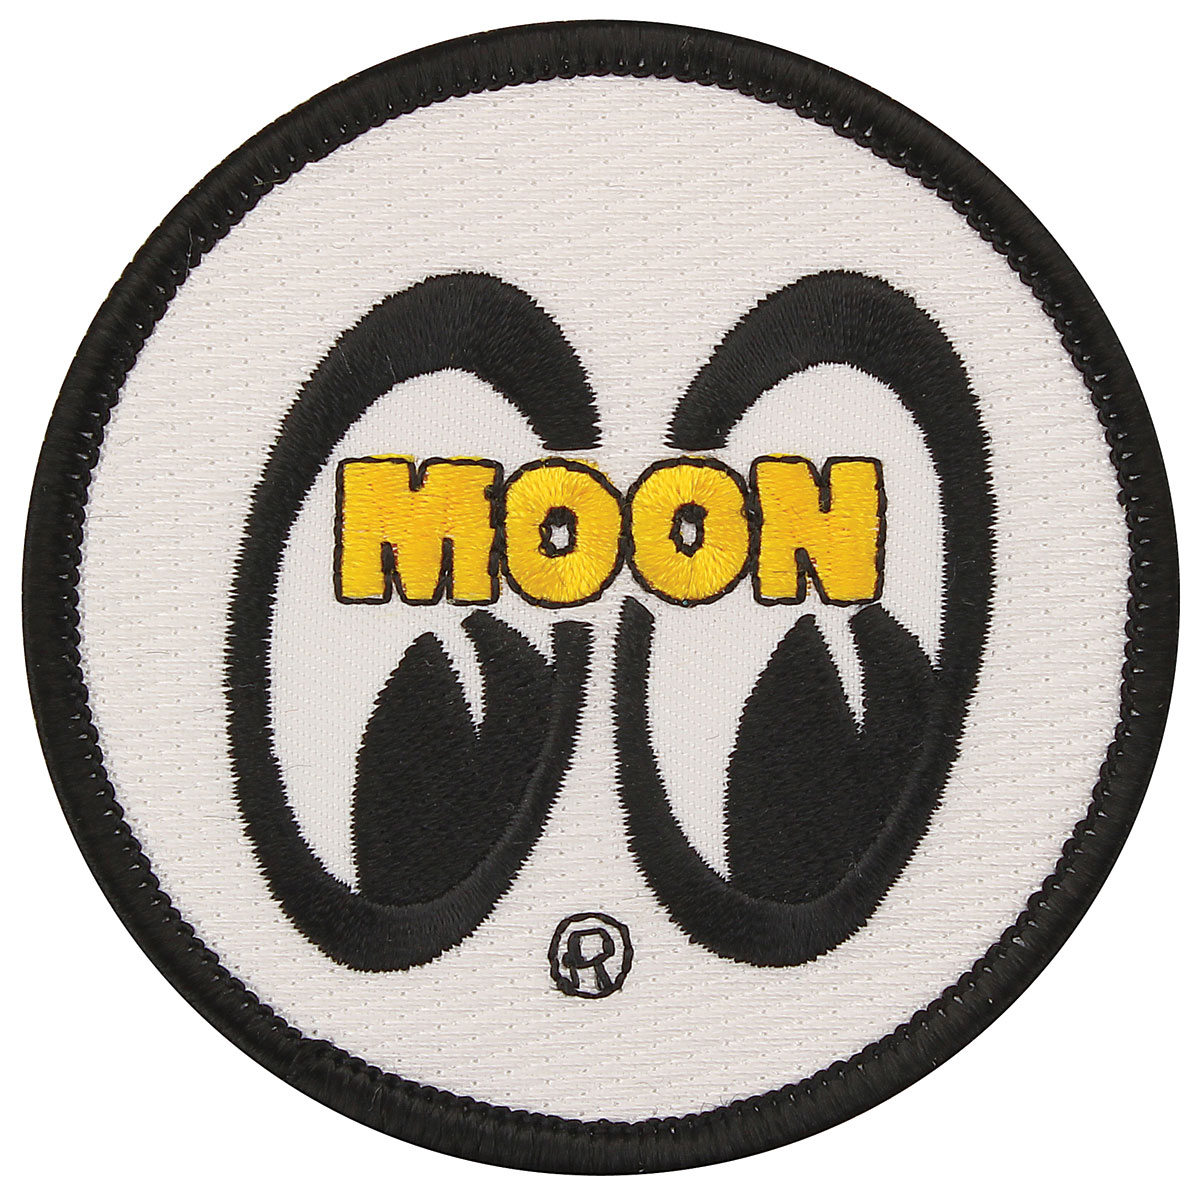 "Photo of Moon Novelty 3"" White Sew-On Patch"